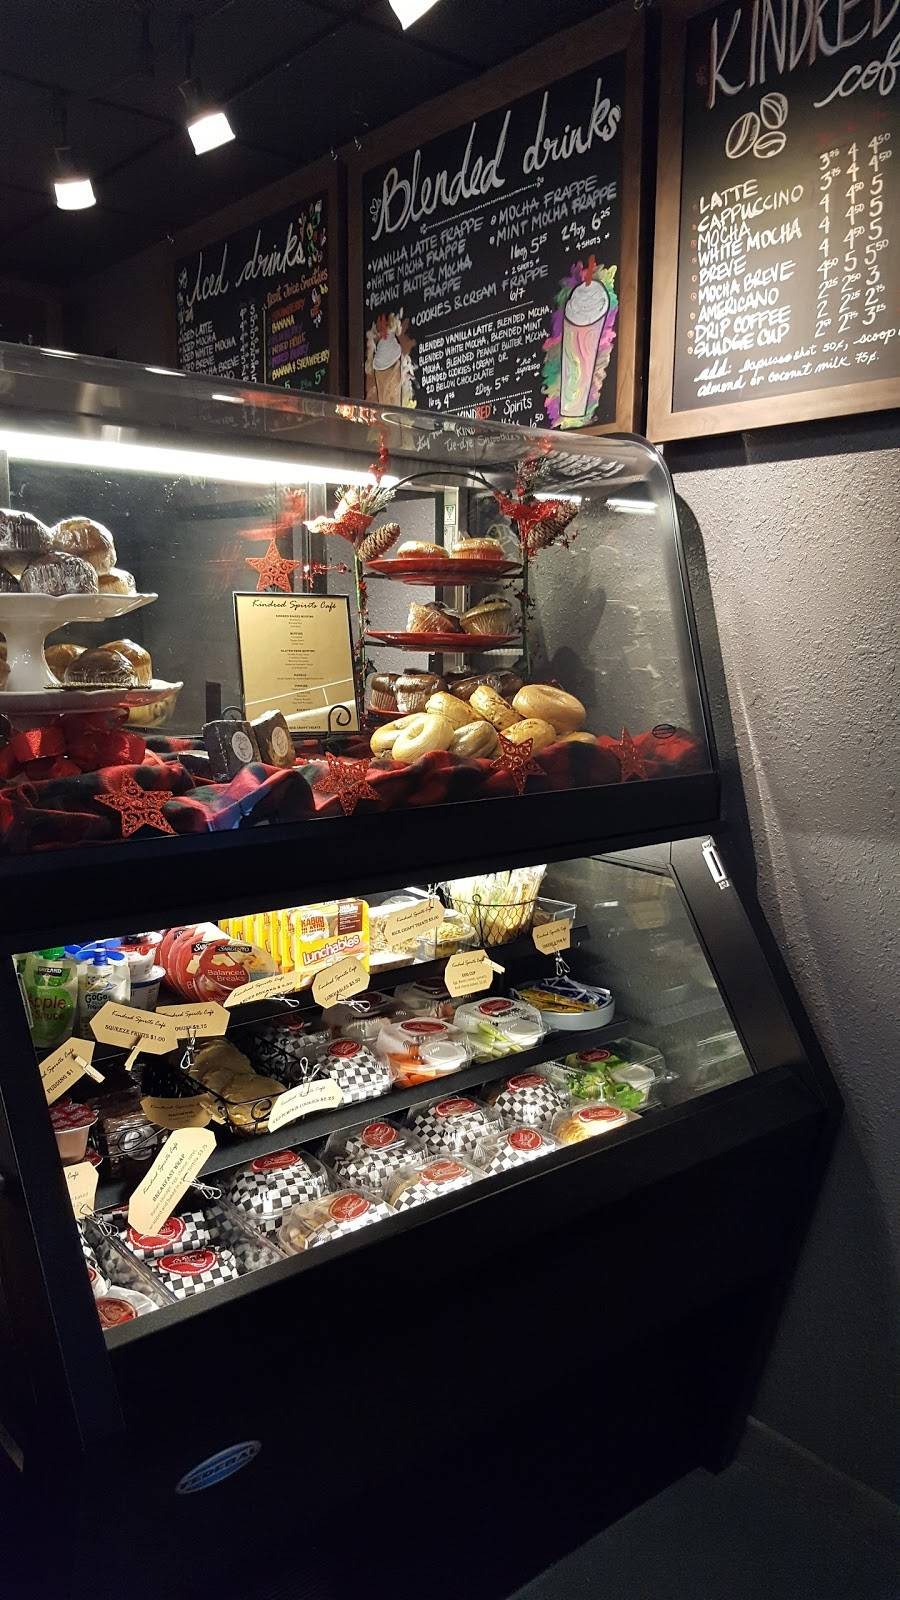 Kindred Spirits Coffee - cafe  | Photo 7 of 9 | Address: 11051 OMalley Centre Dr, Anchorage, AK 99515, USA | Phone: (907) 344-6911